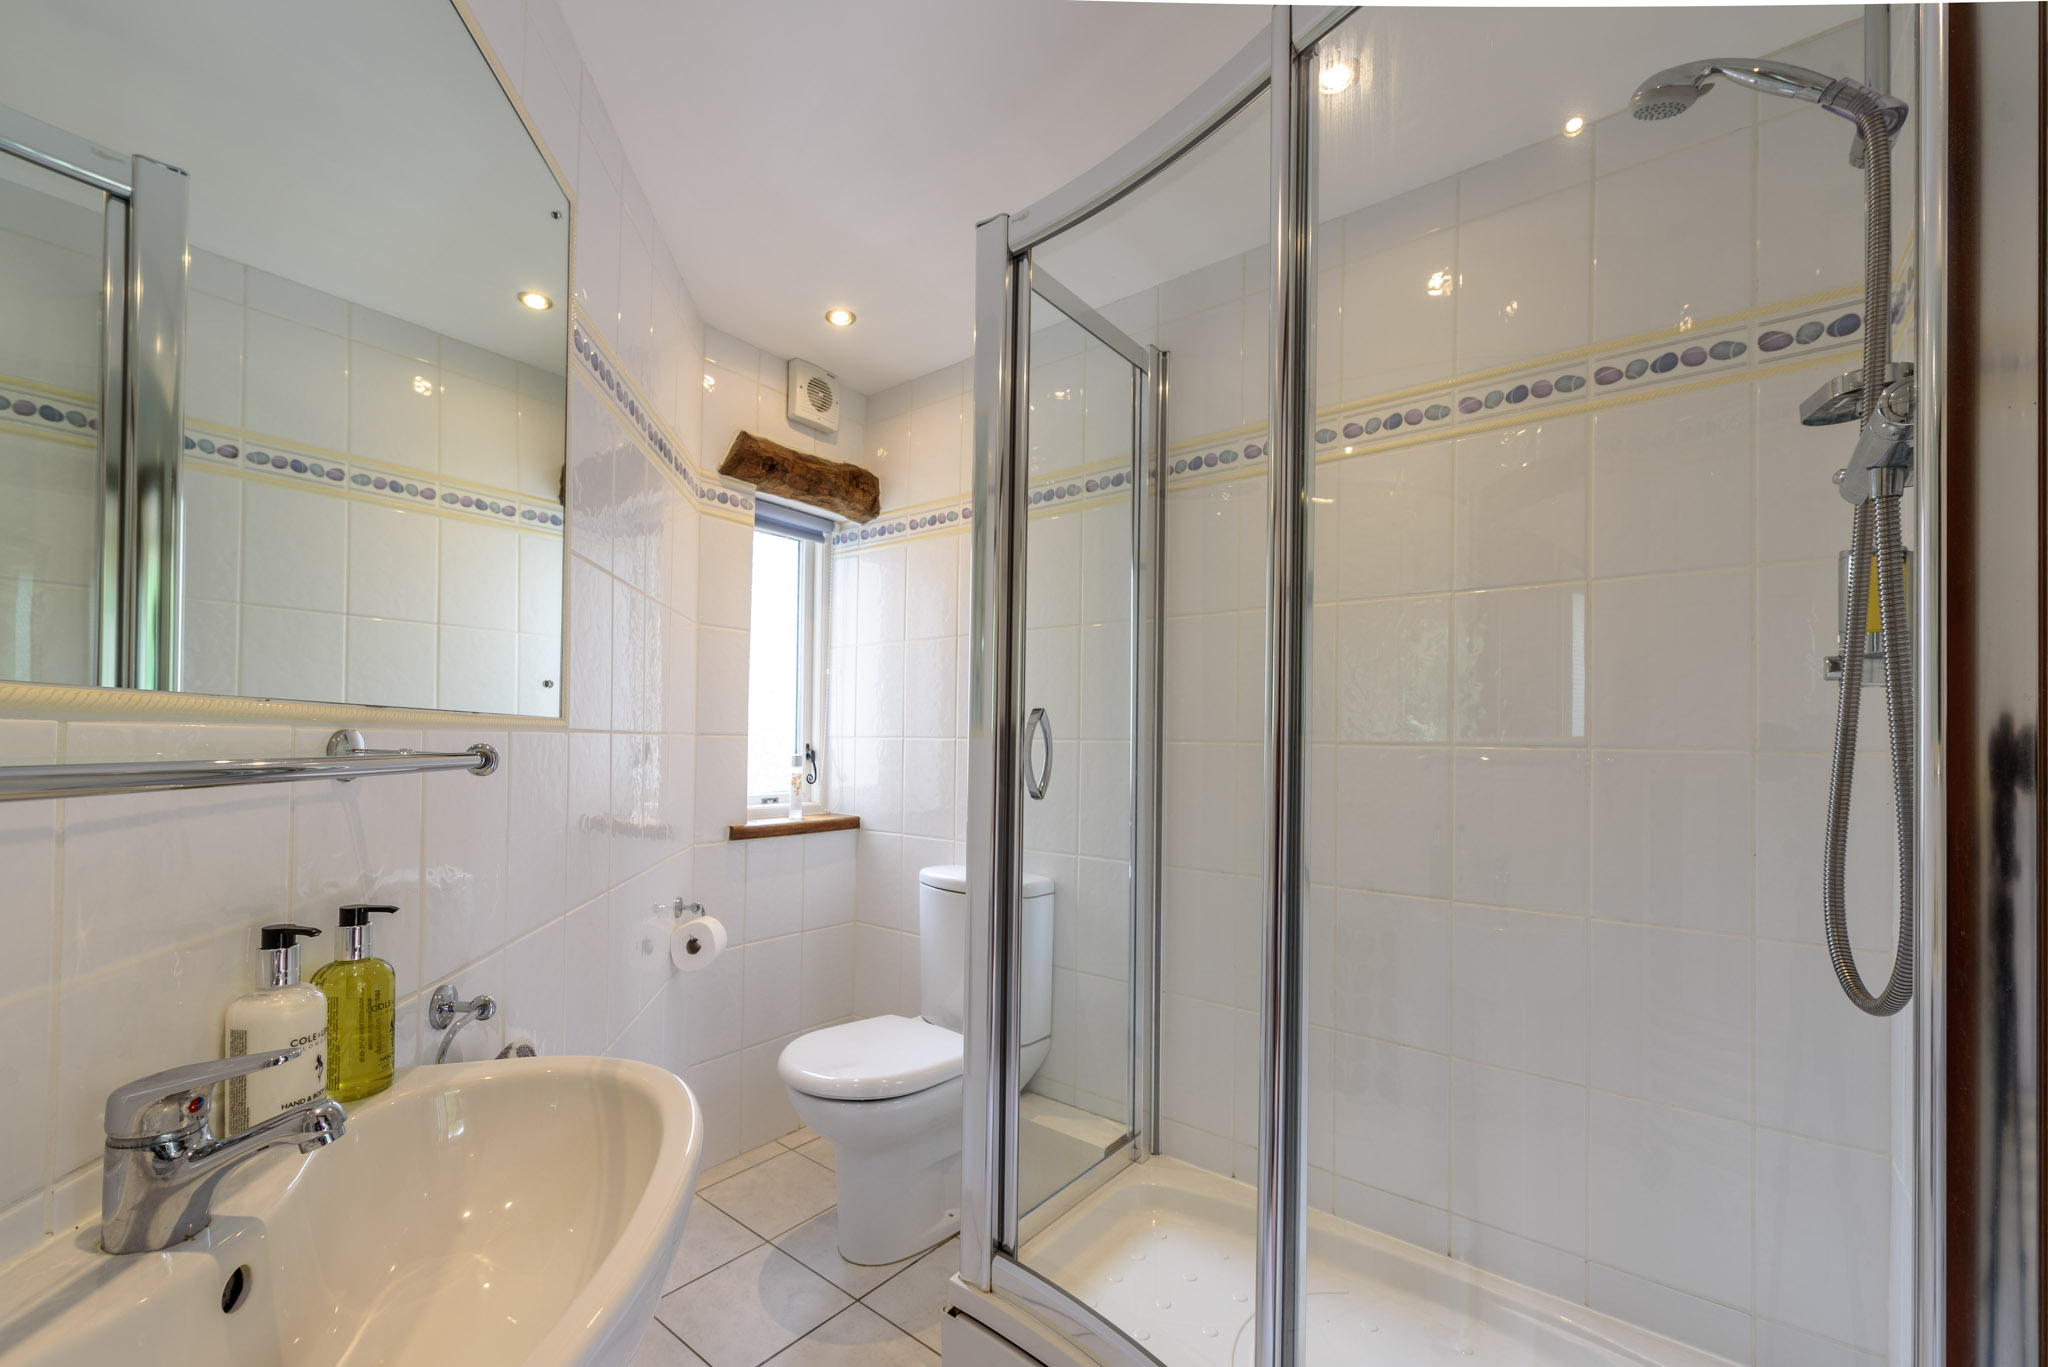 Ground floor modern bathroom with large shower